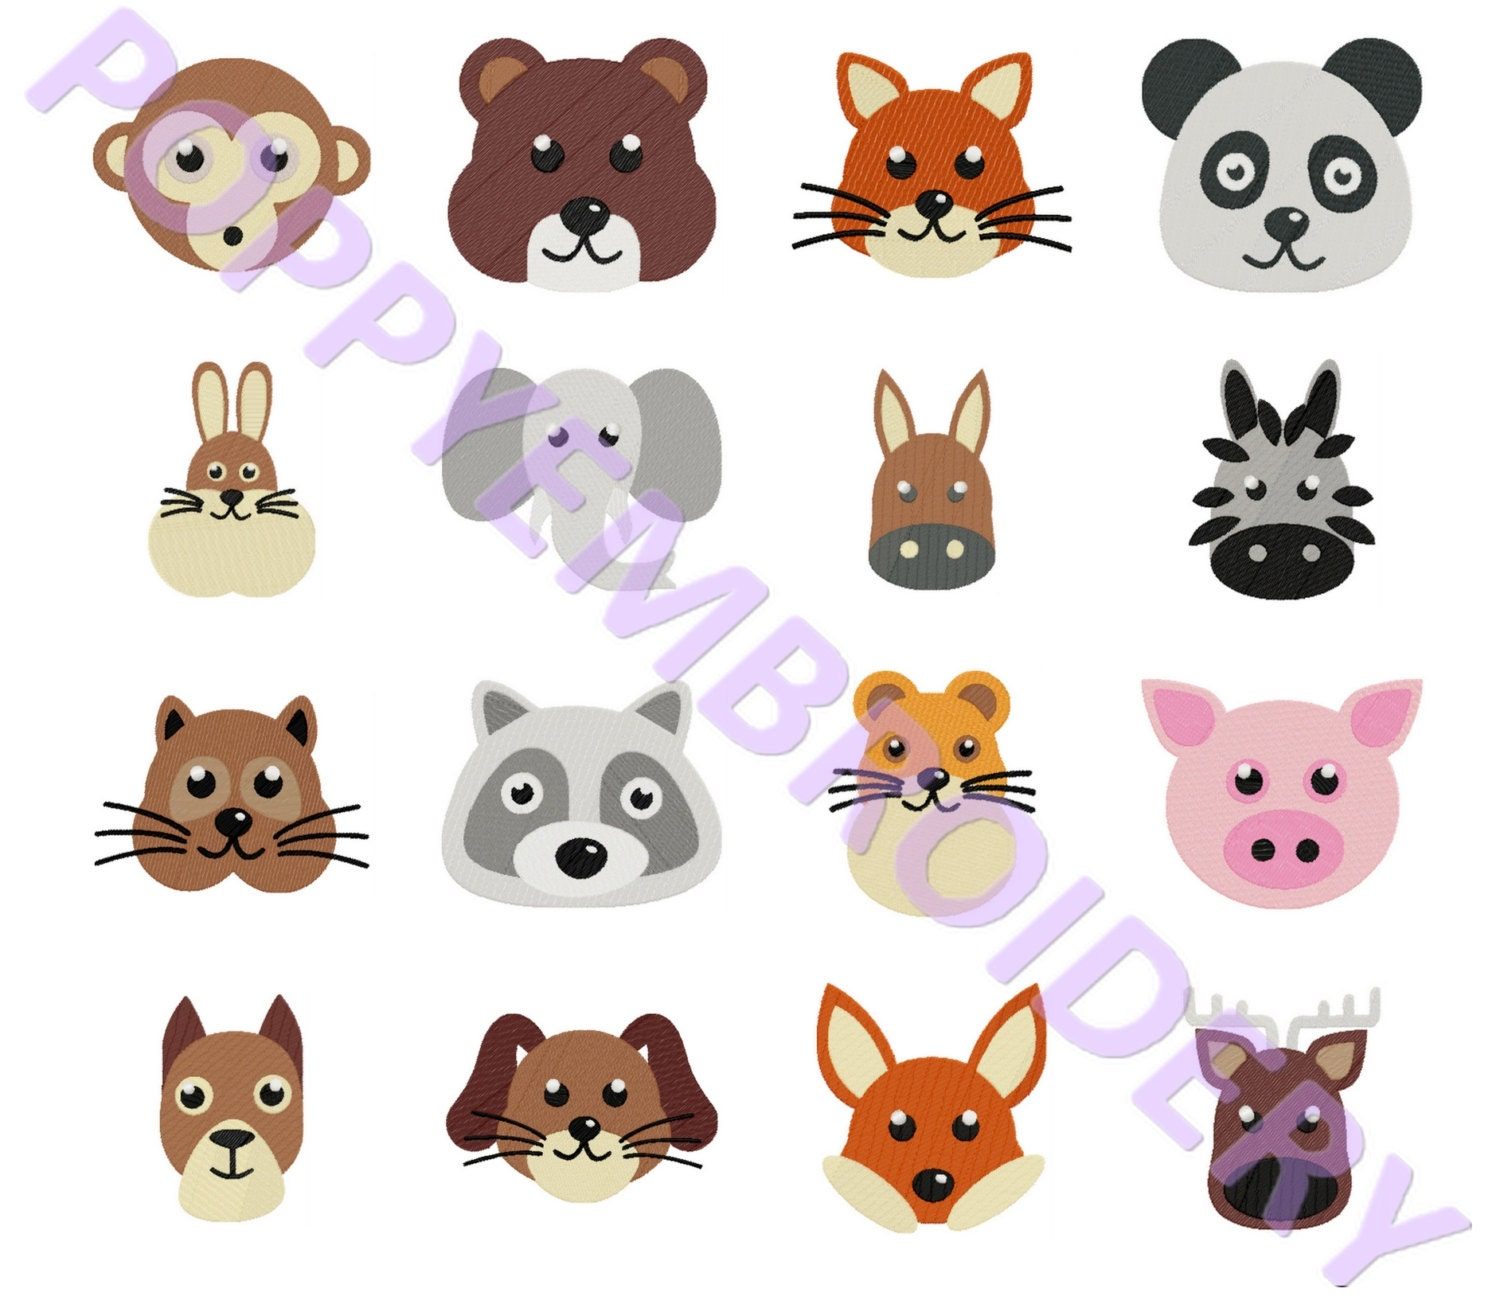 CUTE ANIMALS Design For Embroidery Machine  Animaux